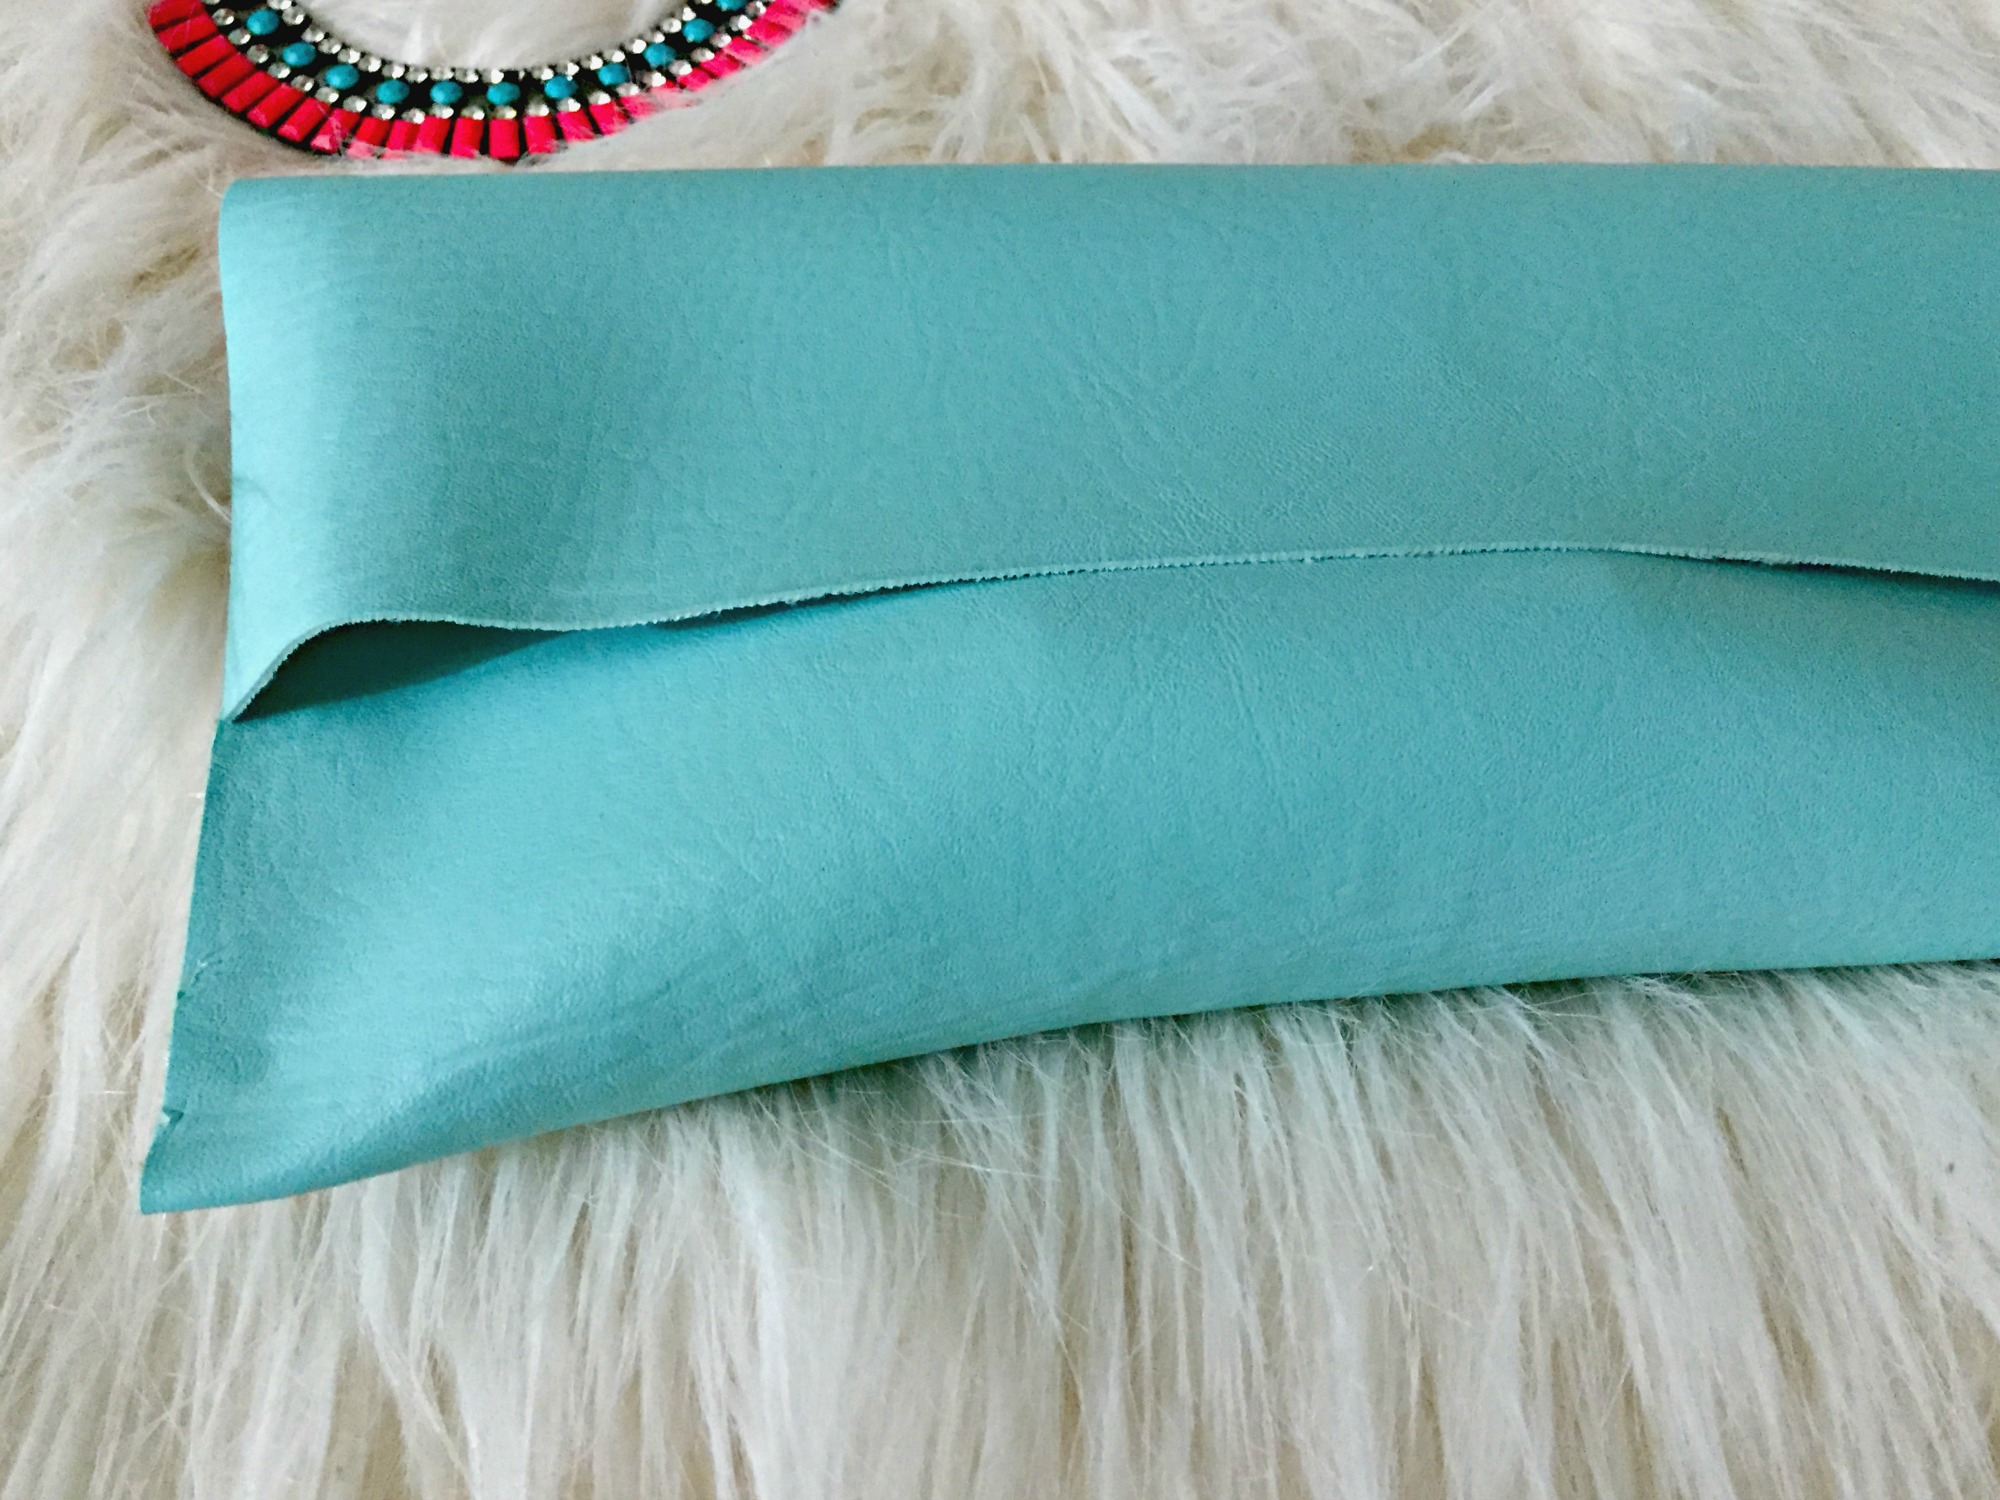 DIY No Sew Clutch